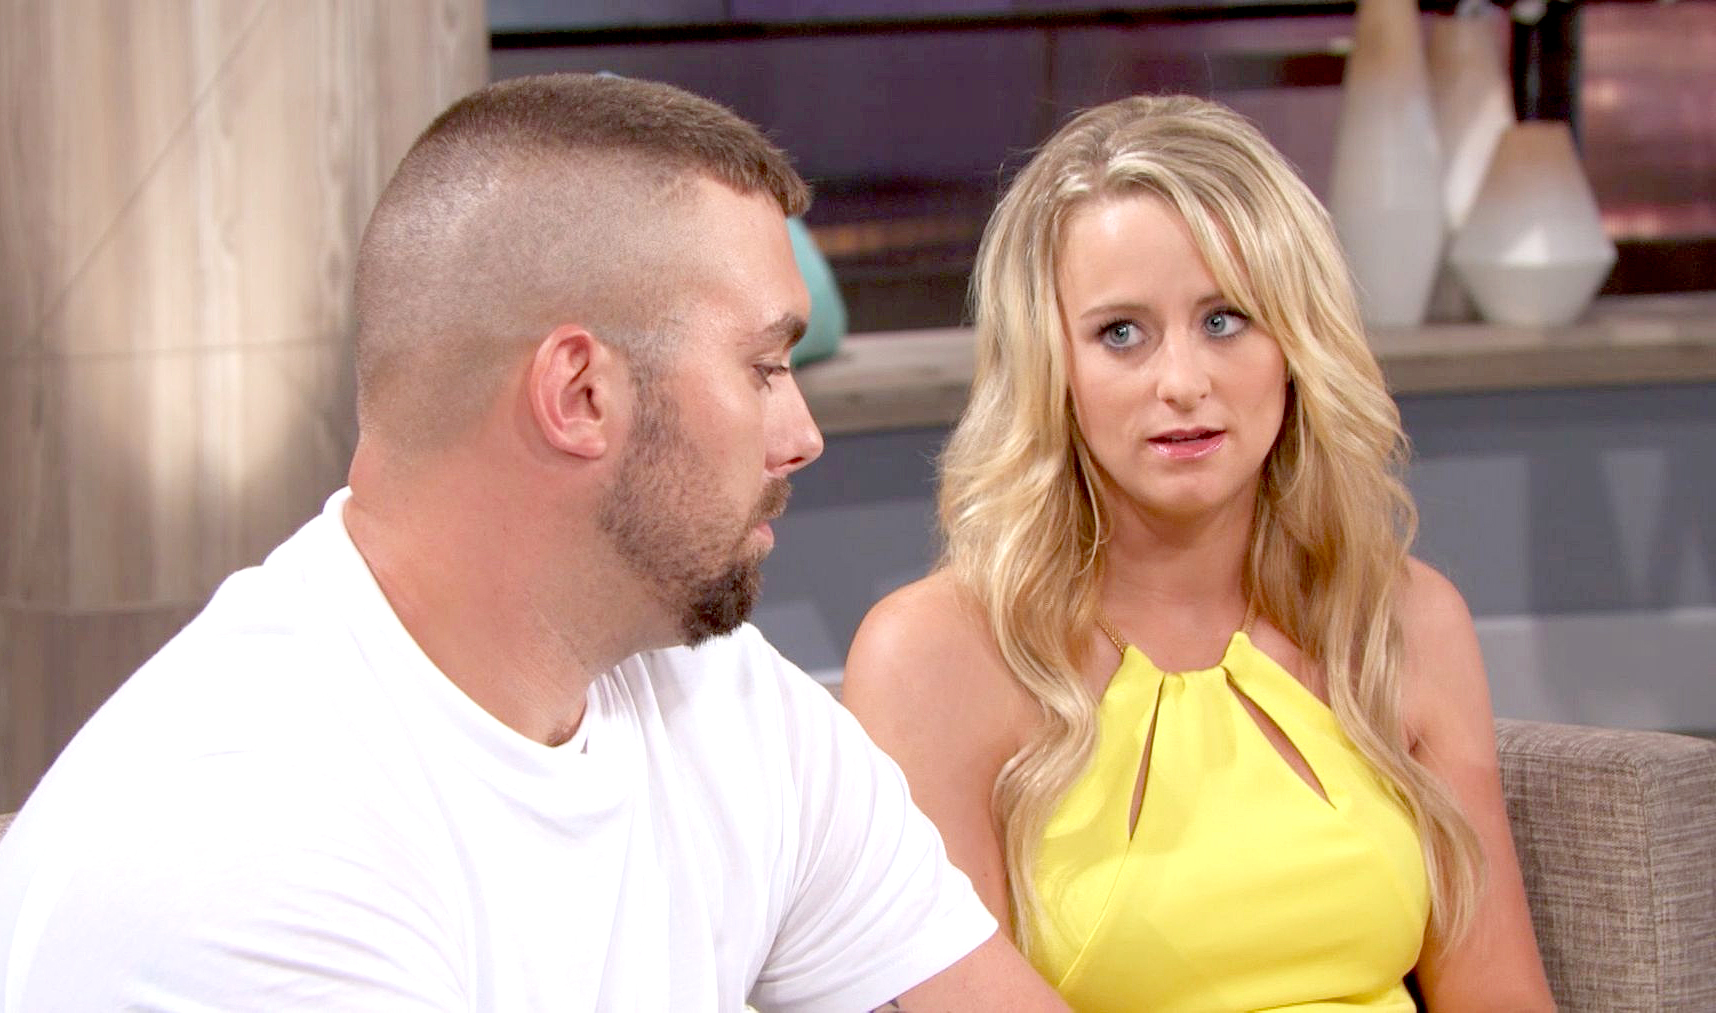 Leah Messer Clears Up Custody Situation With Corey Simms